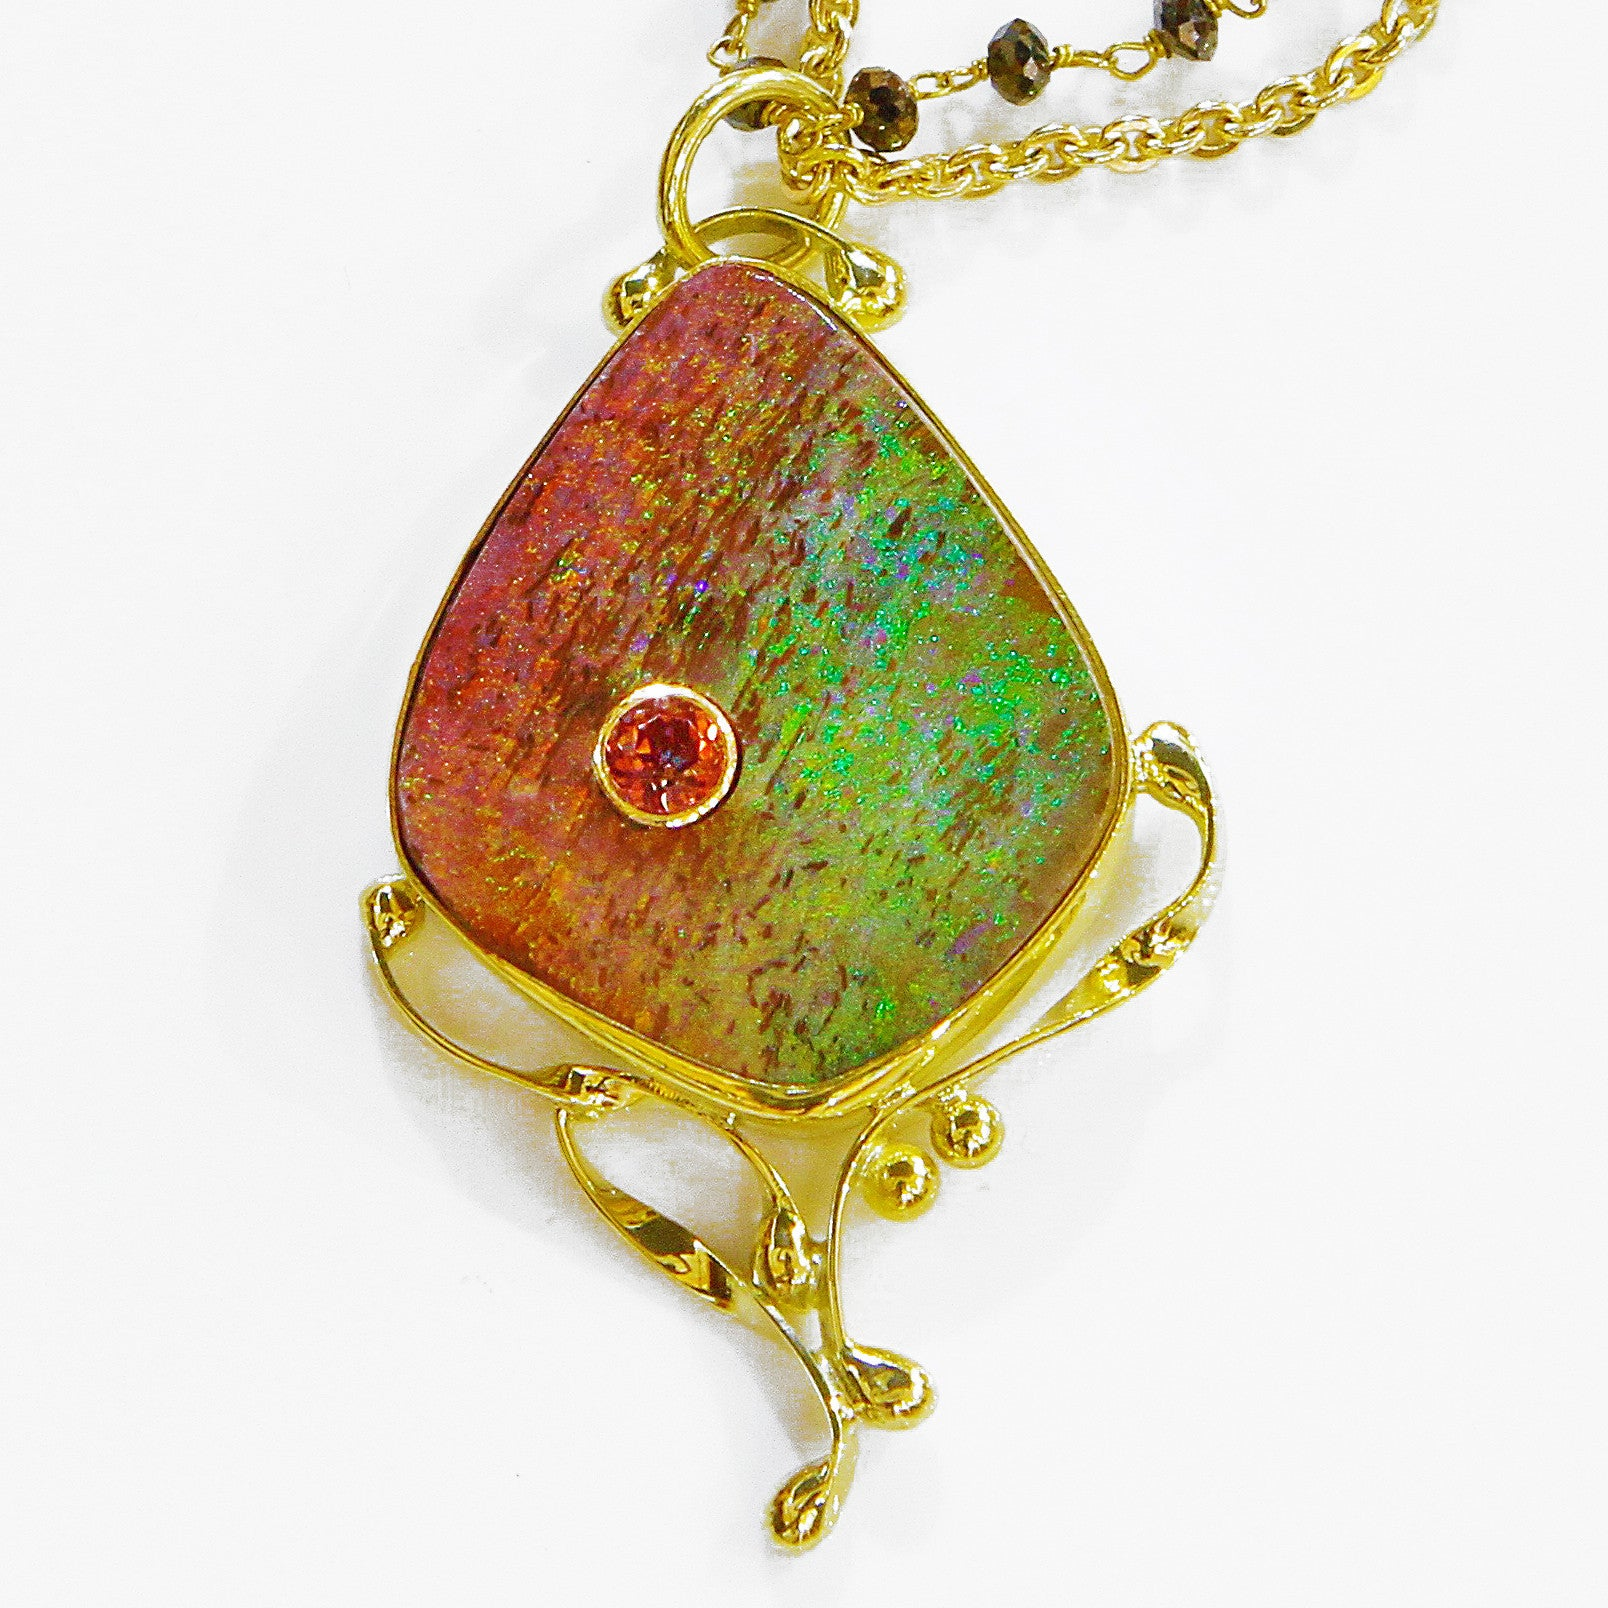 banque pendant gold australian diamond in boulder opal products